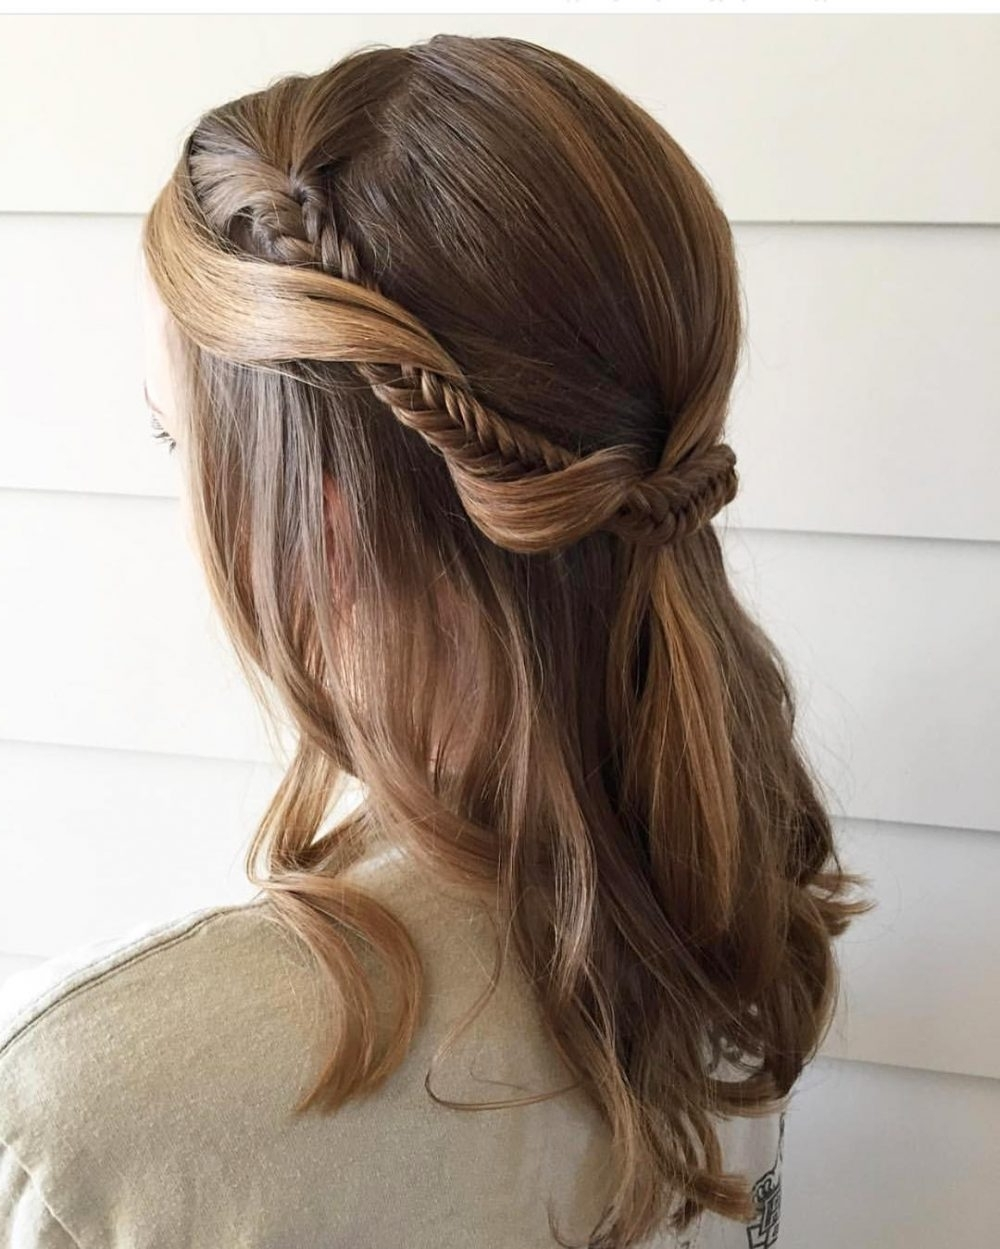 33 Ridiculously Easy Diy Chic Updos In Long Hair Updo Hairstyles For Work (View 4 of 15)